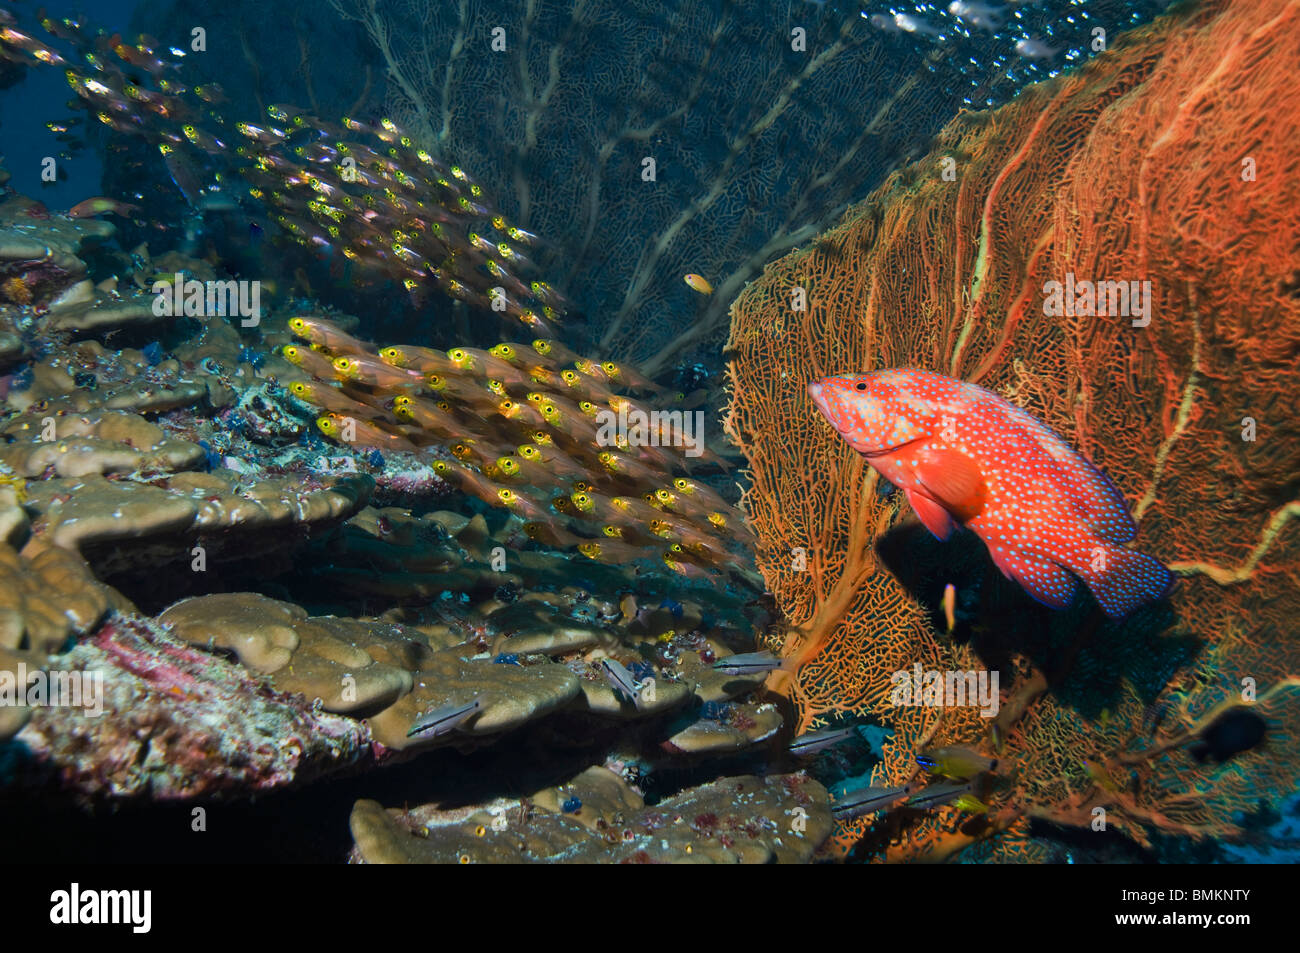 Coral hind with gorgonian, hunting pygmy sweepers on coral reef.  Andaman Sea, Thailand. - Stock Image